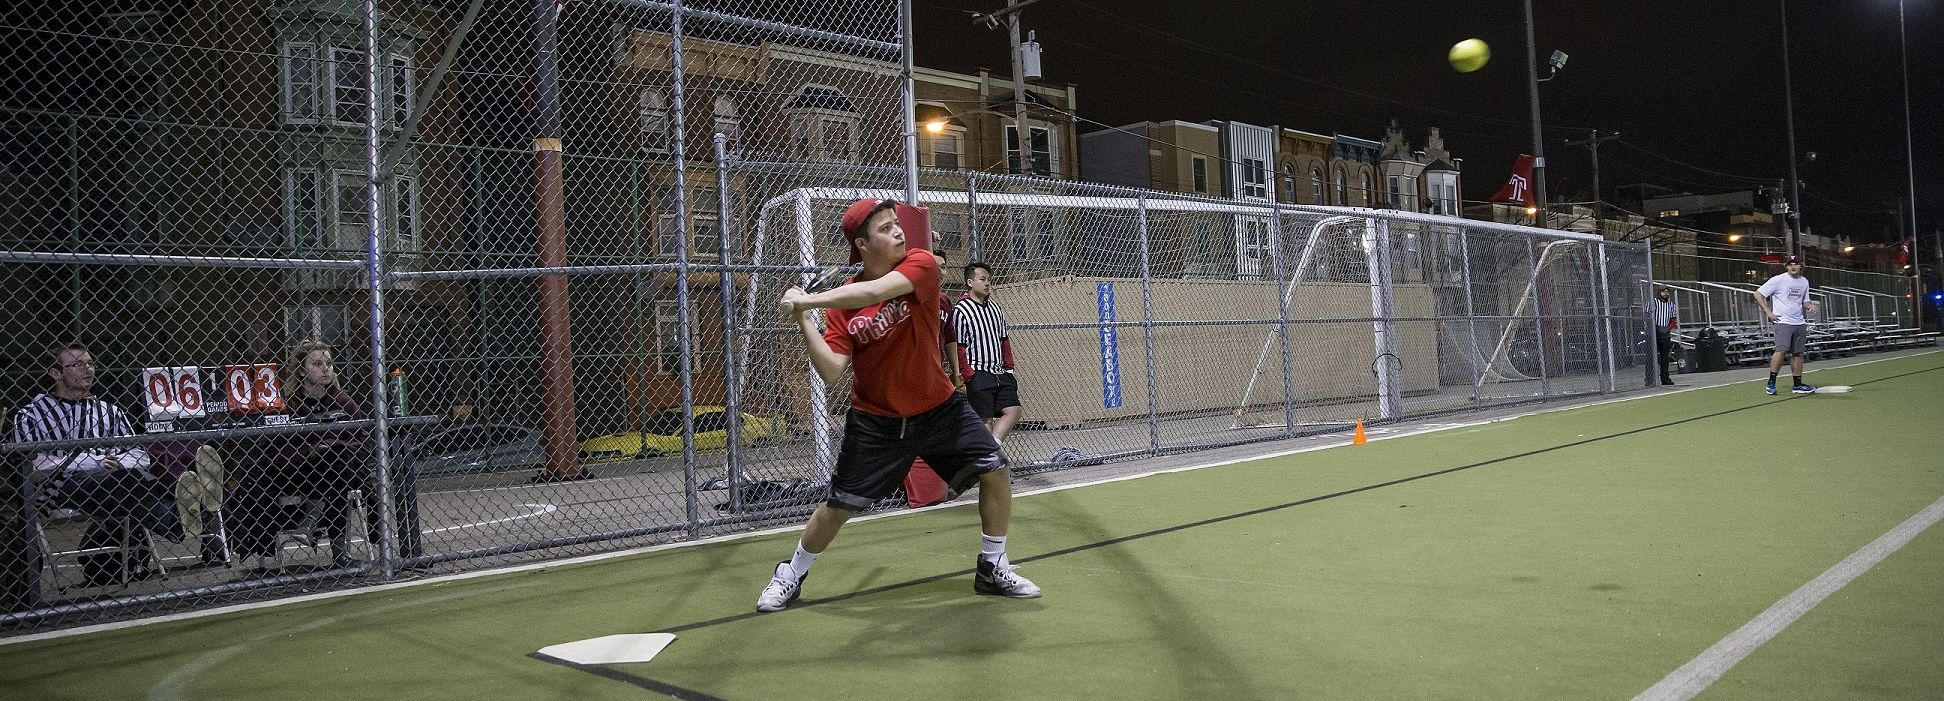 A batter prepares to swing at an incoming pitch.